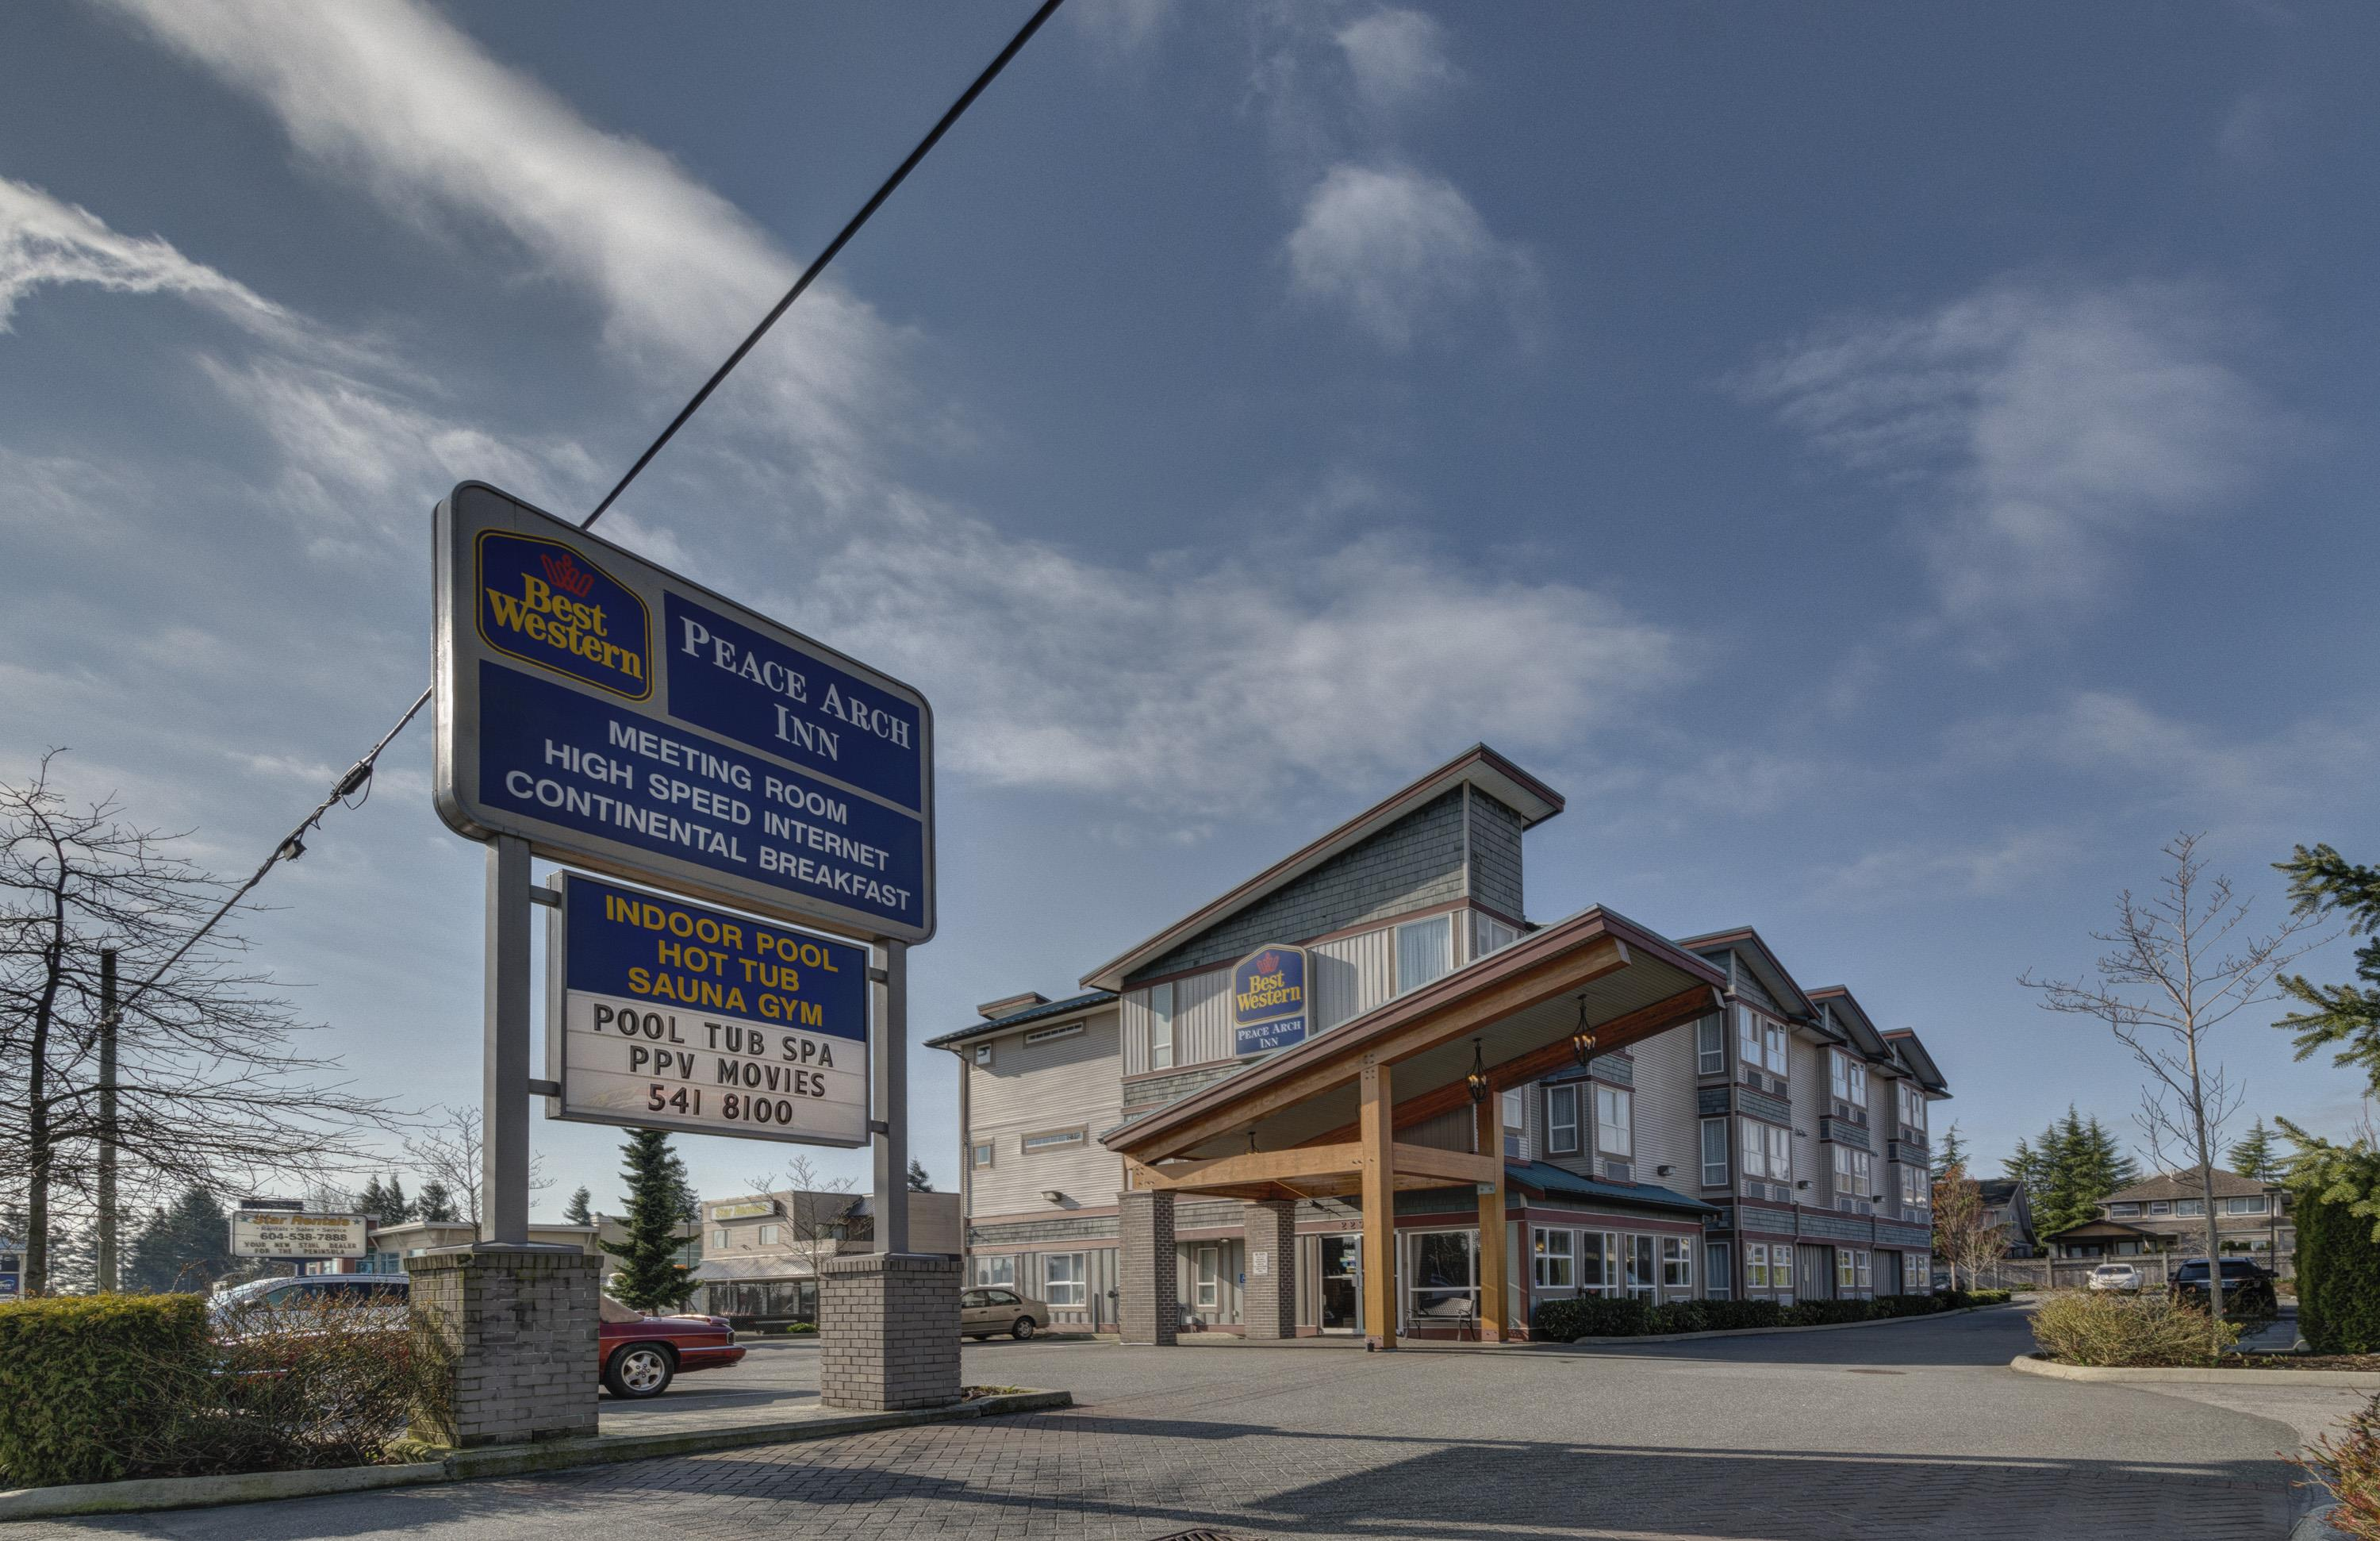 Best Western Peace Arch Inn in Surrey: Exterior